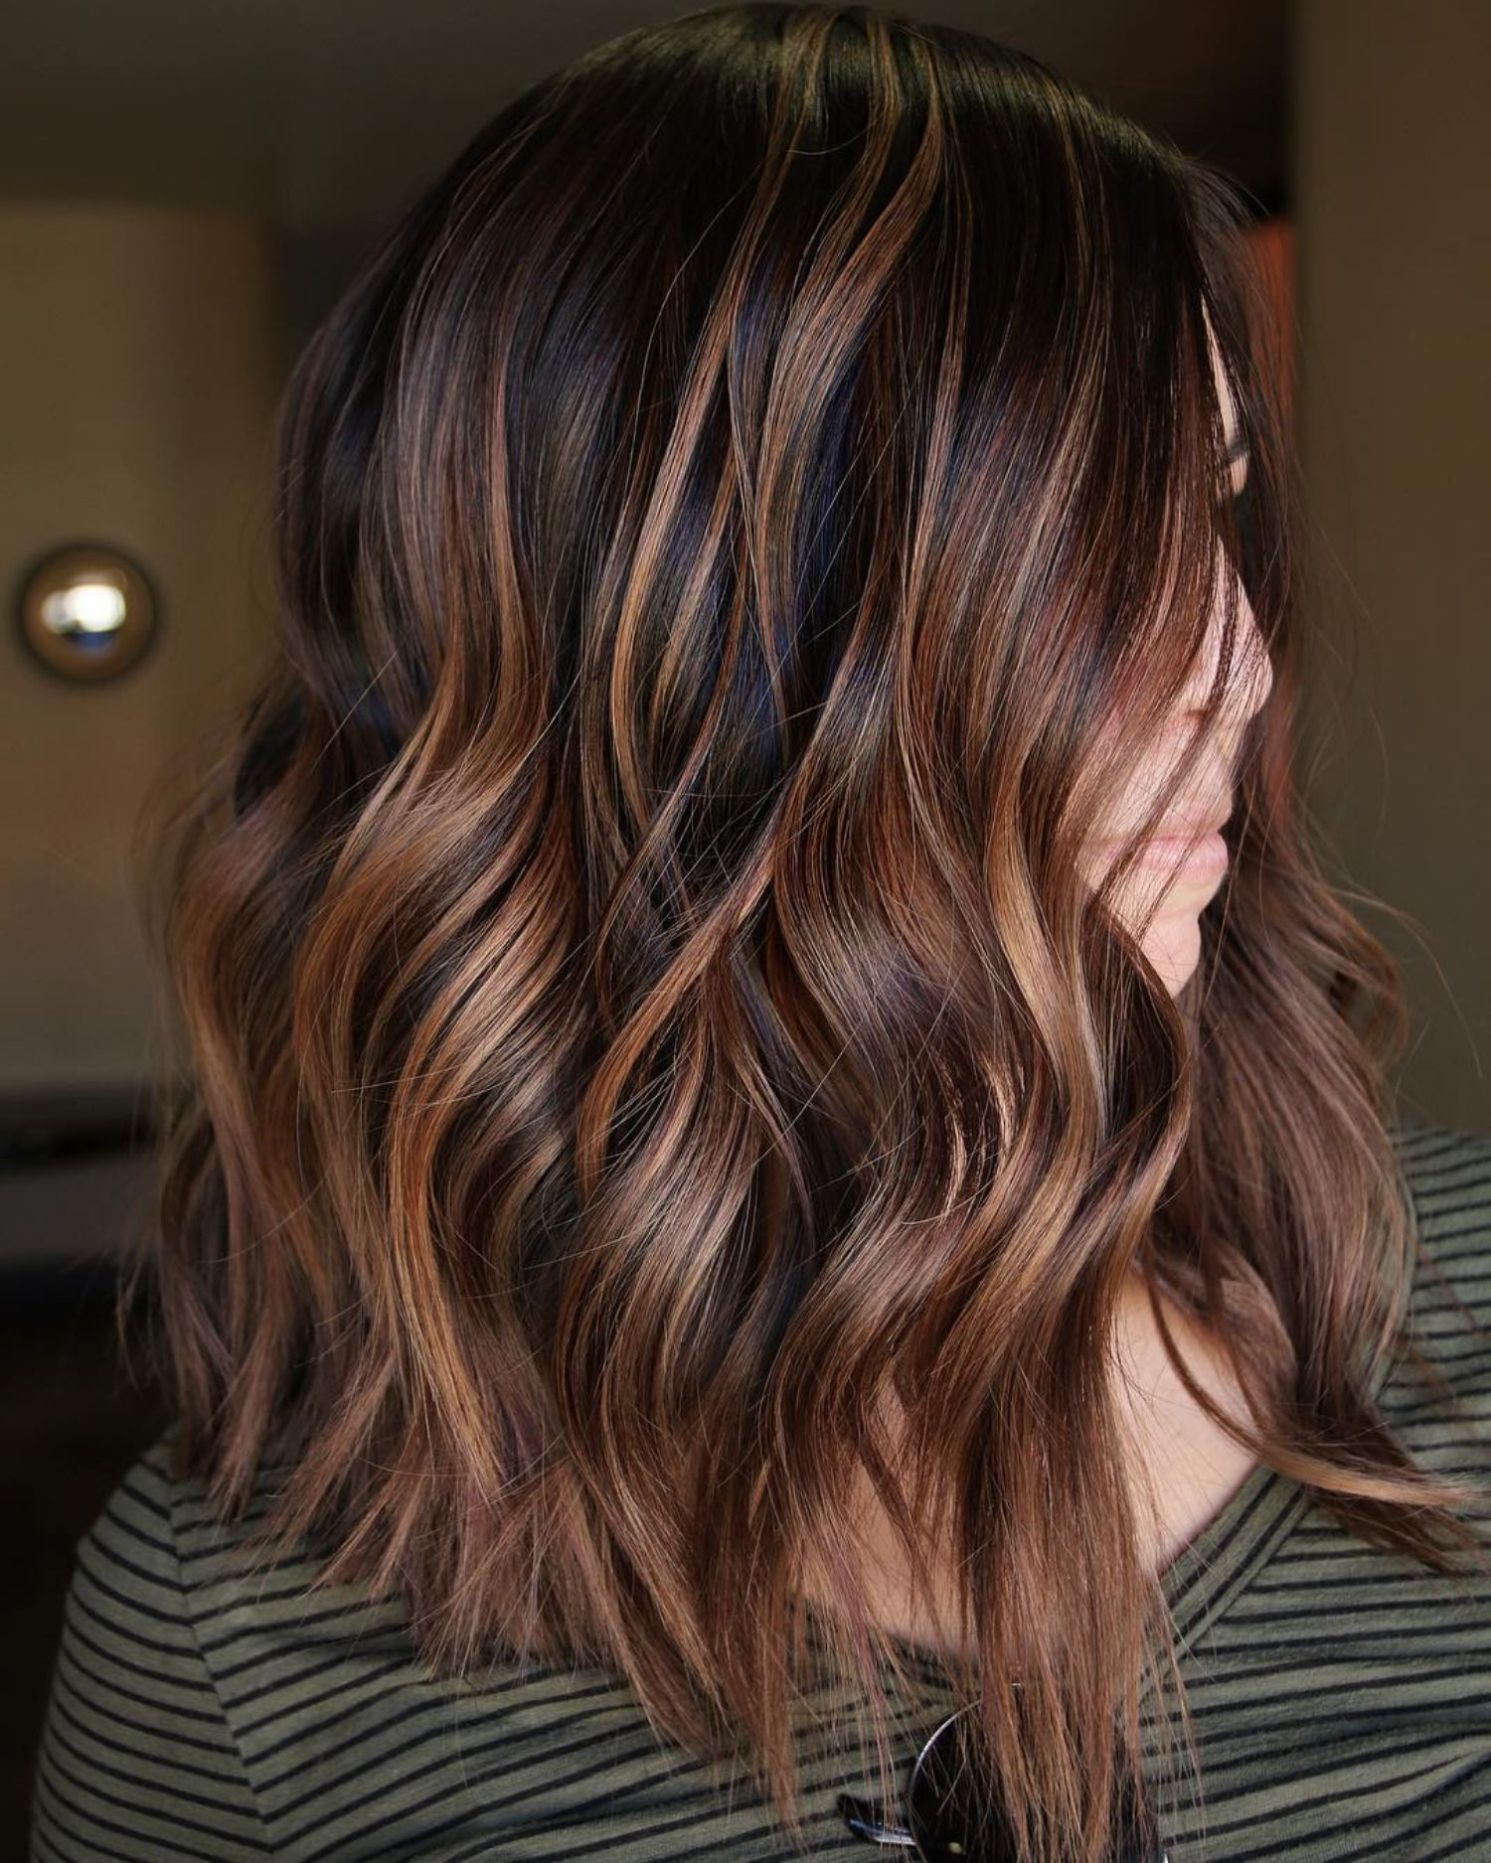 60 Looks With Caramel Highlights On Brown And Dark Brown Hair Caramel Brown Hair Brown Hair Color Chart Hair Color Light Brown